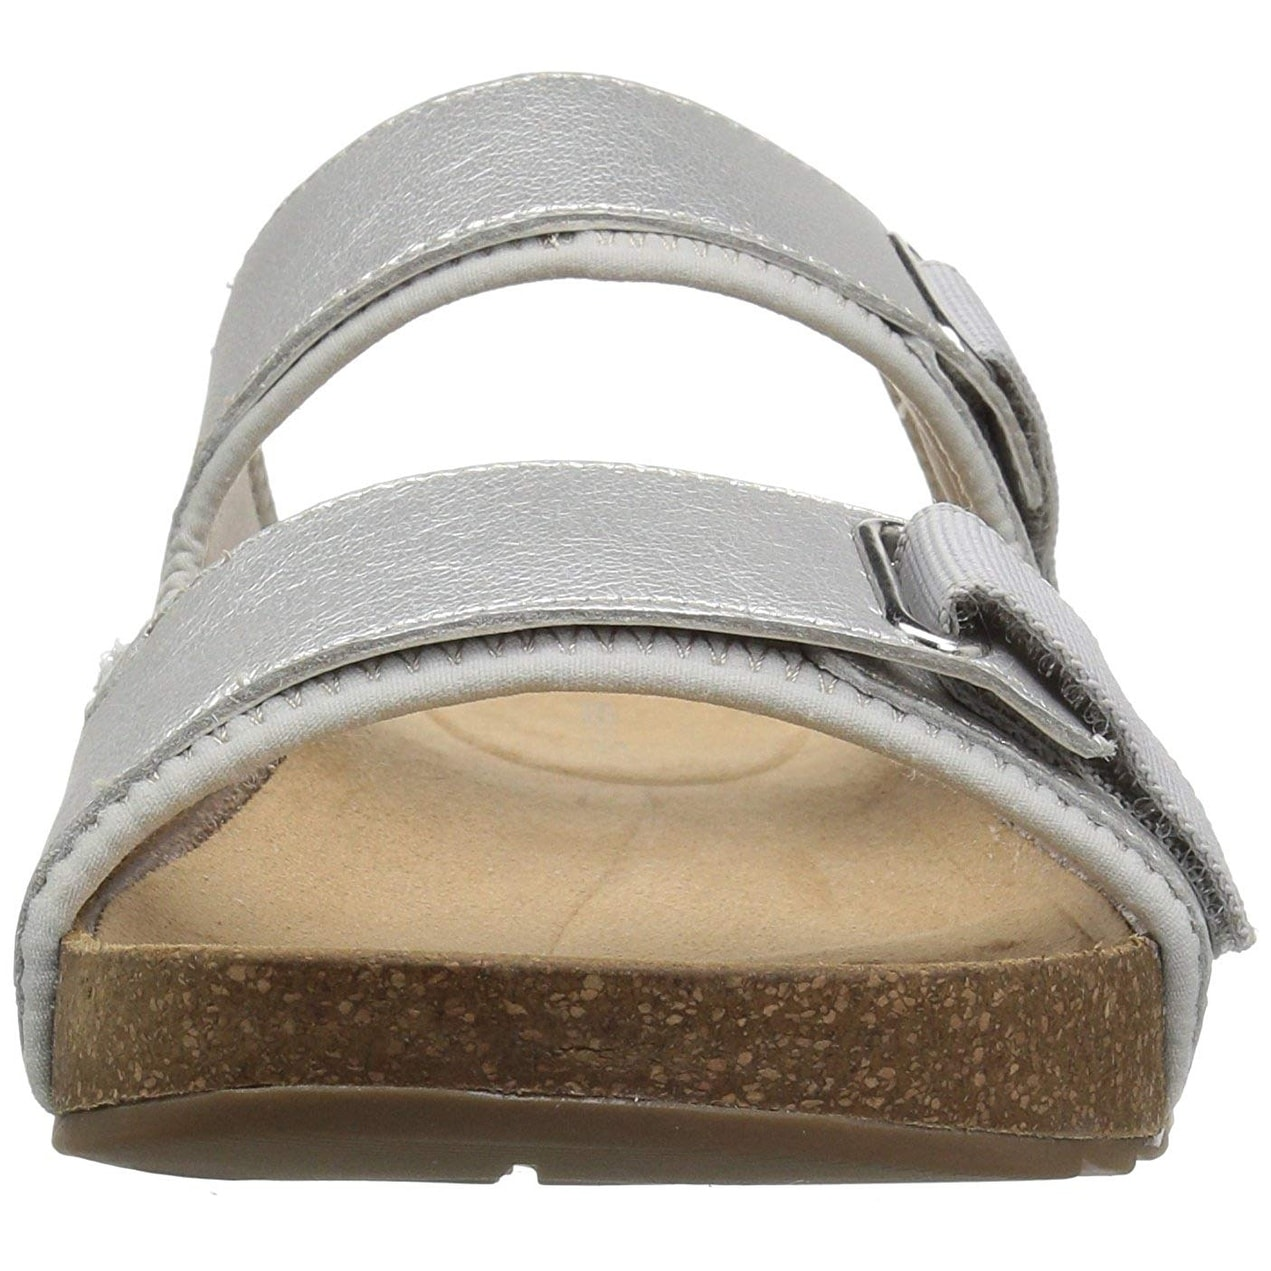 eb26b4d4d323 Shop Easy Spirit Women s Peace Sandal - Free Shipping On Orders Over  45 -  Overstock - 25692818